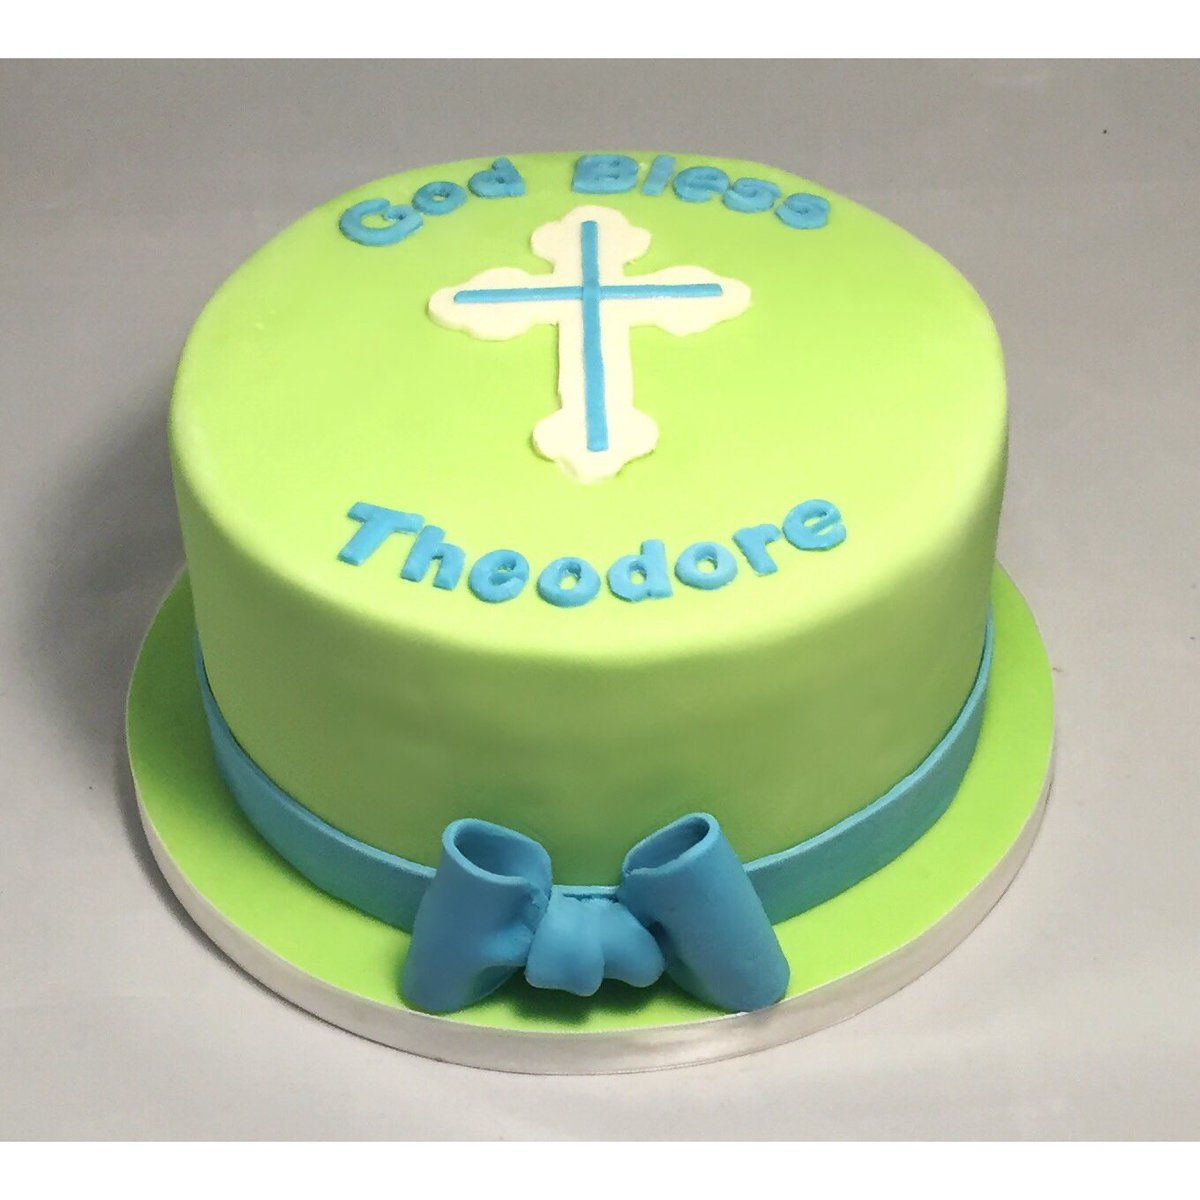 #GodBless Theodore! #communion #cake #Celebrate #Nyc #Congratulations #EdibleArt #CakeArt #CaleDesign